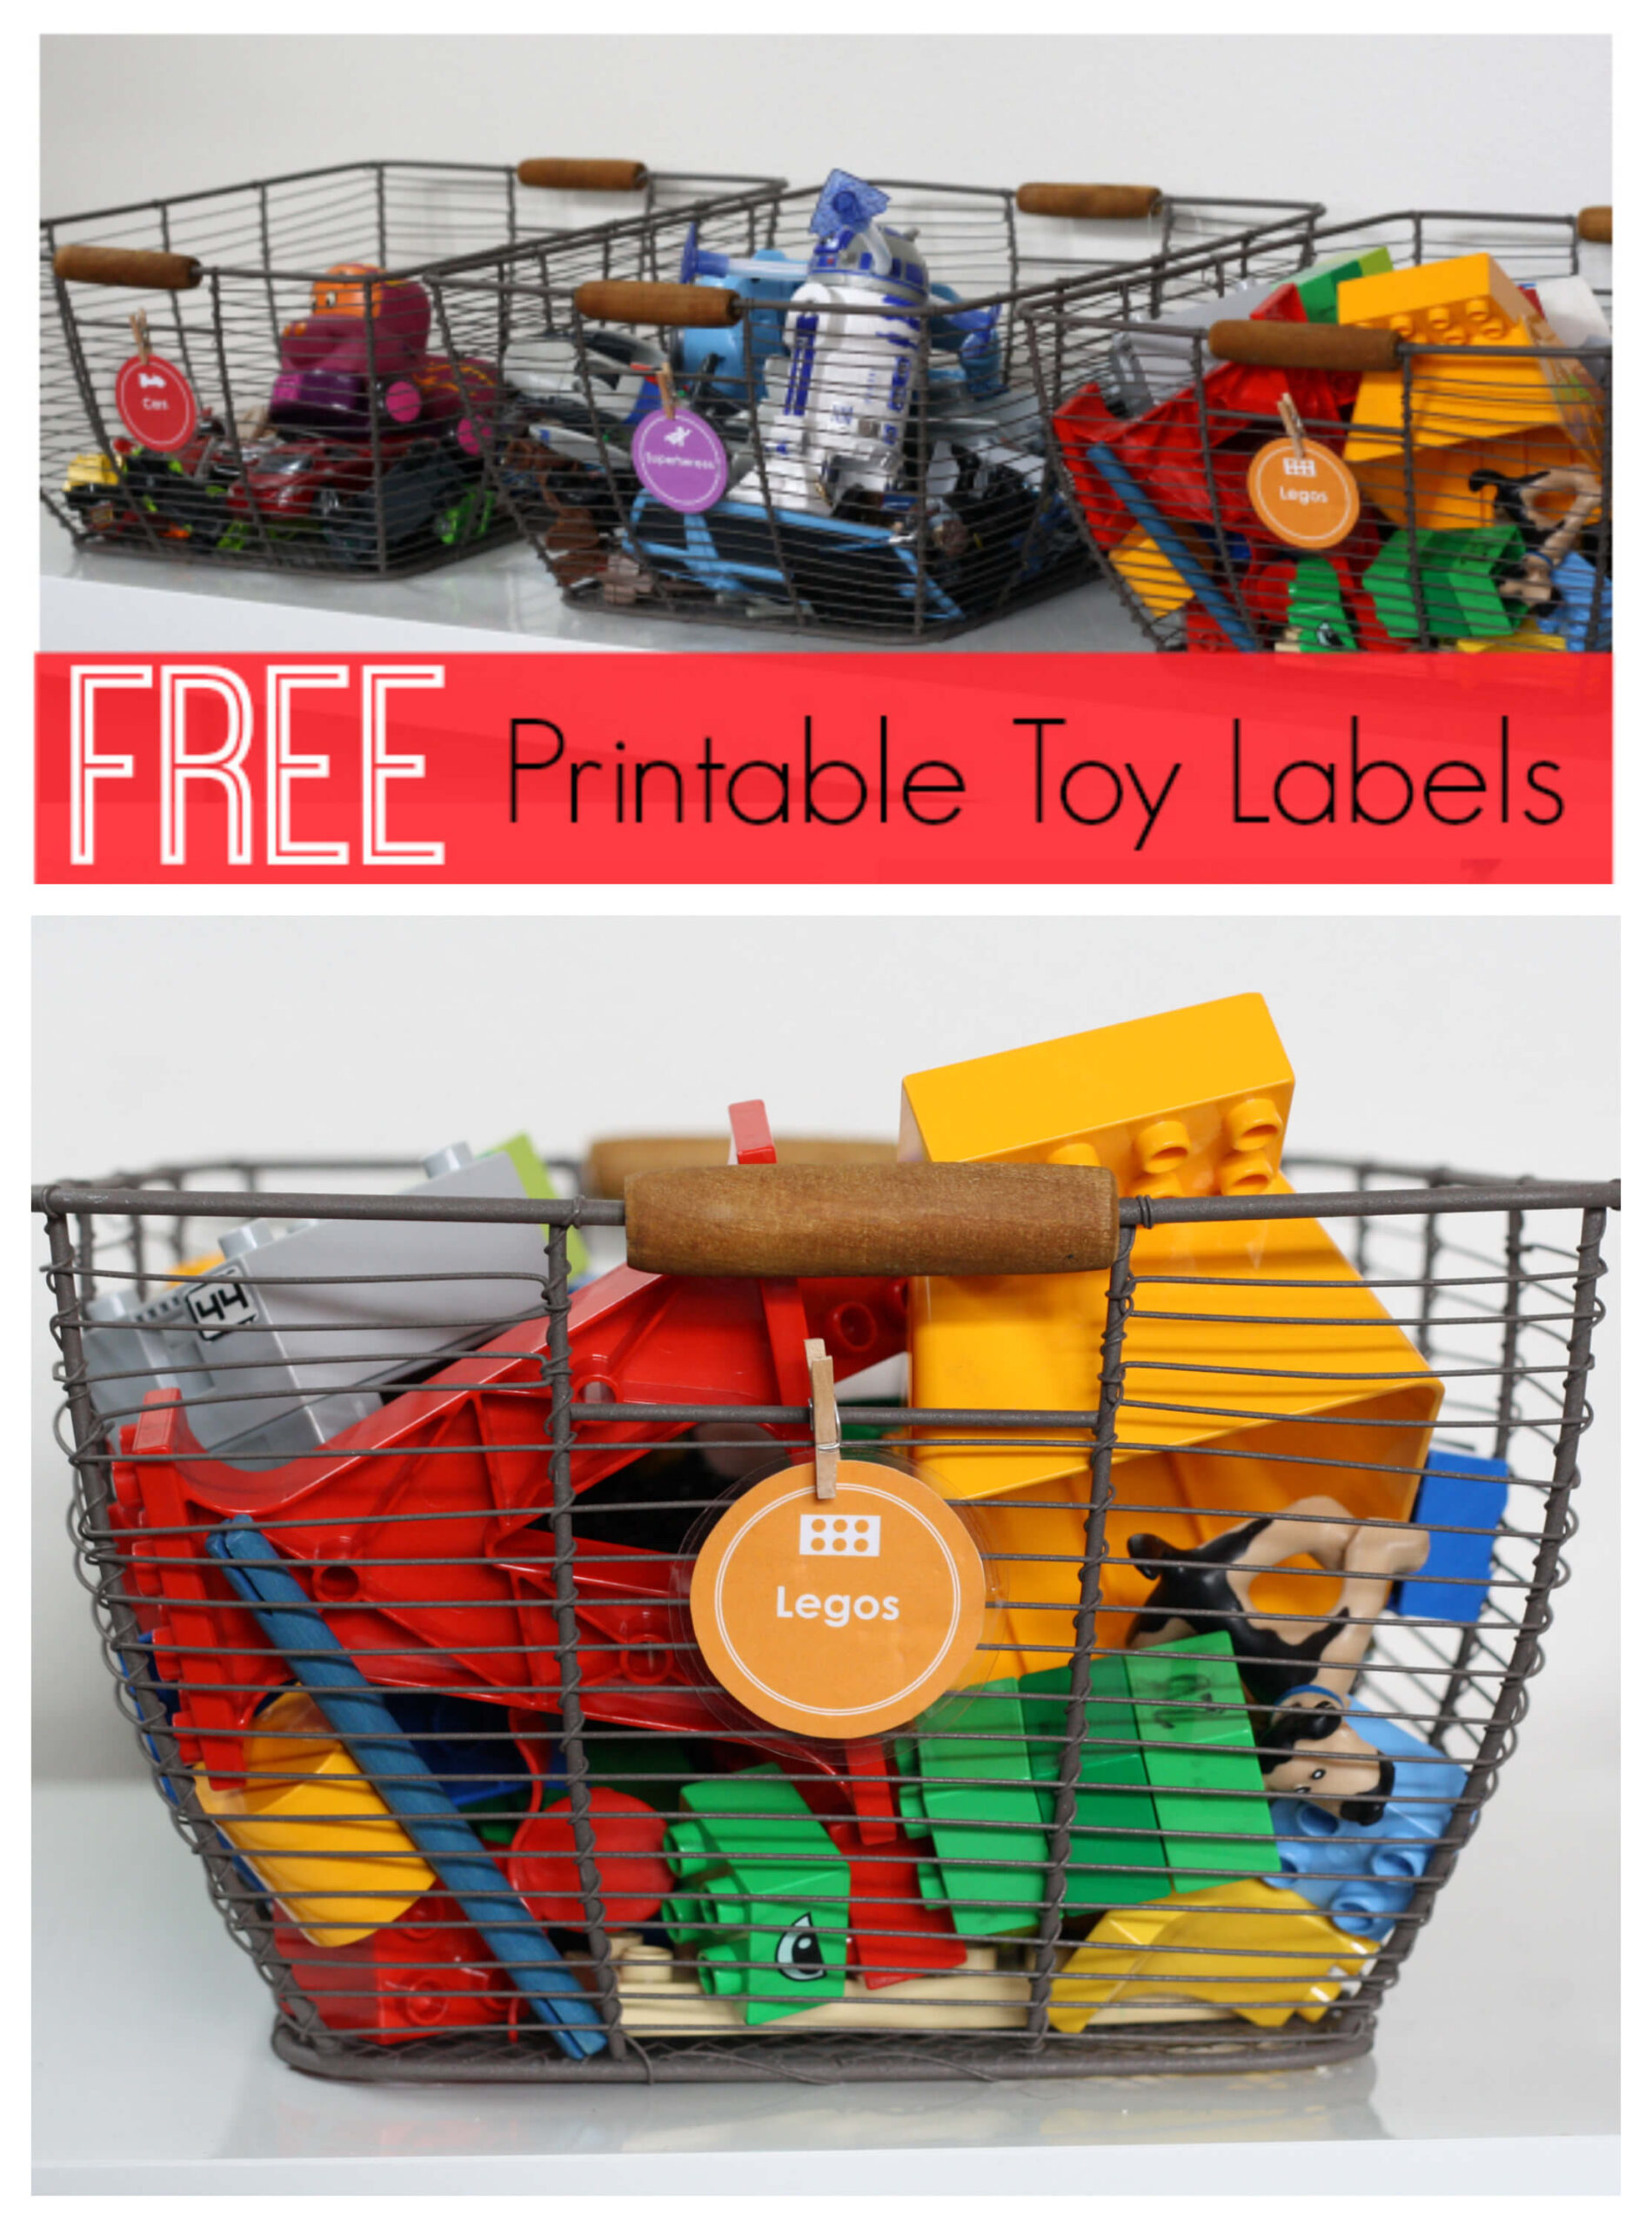 Free Printable Toy Labels